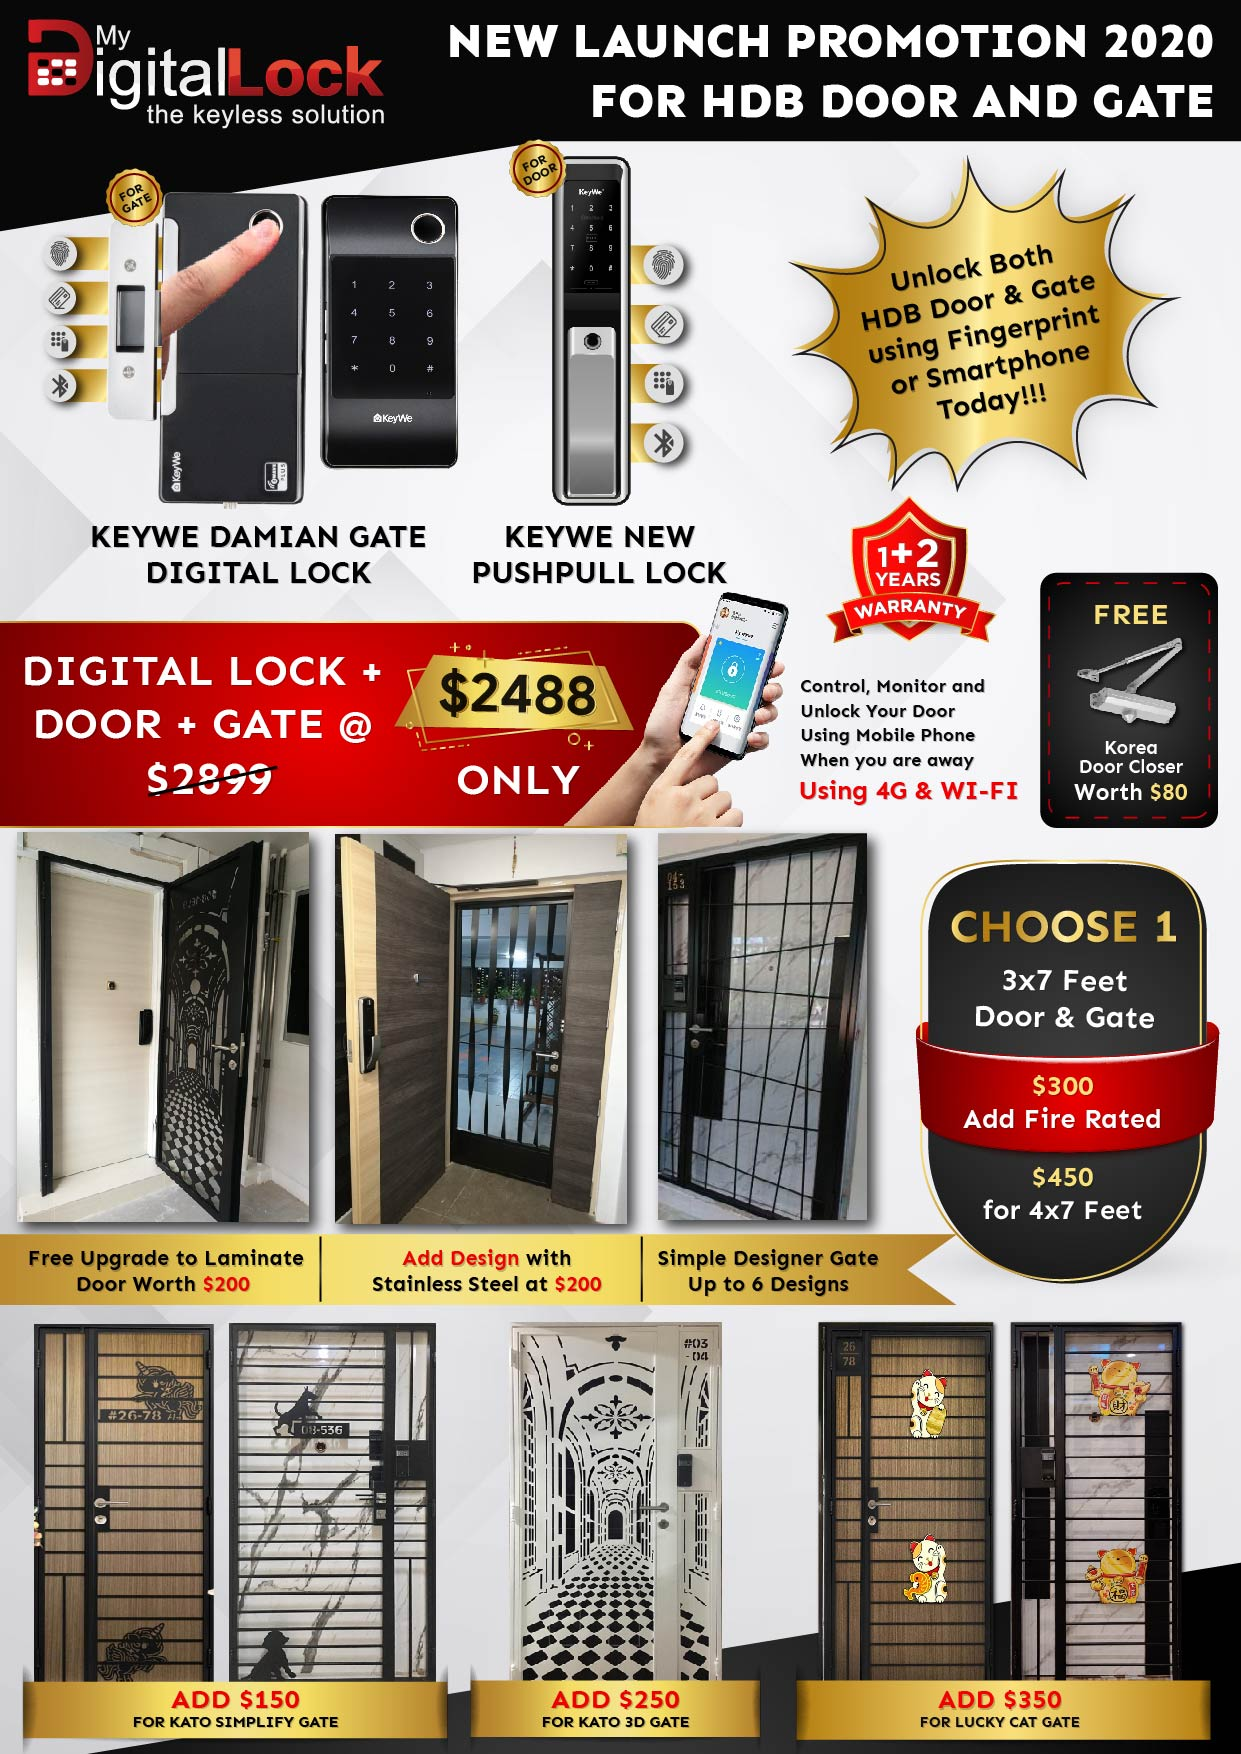 Golden-Rat-Year-HDB-Door-and-Gate-Promotion-with-KeyWe-Z-Wave-and-Push-Pull-Digital-Lock